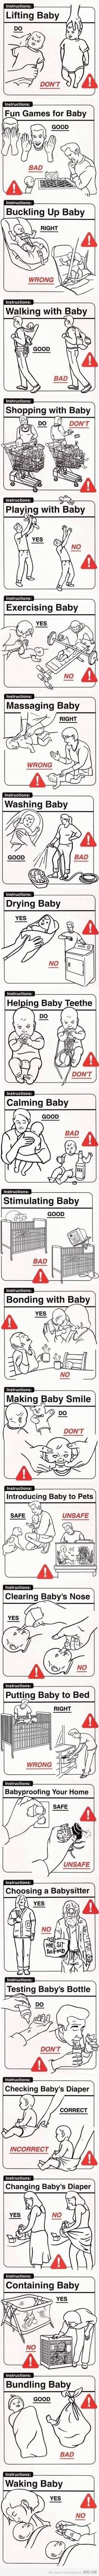 Haha this would have been helpful for child development